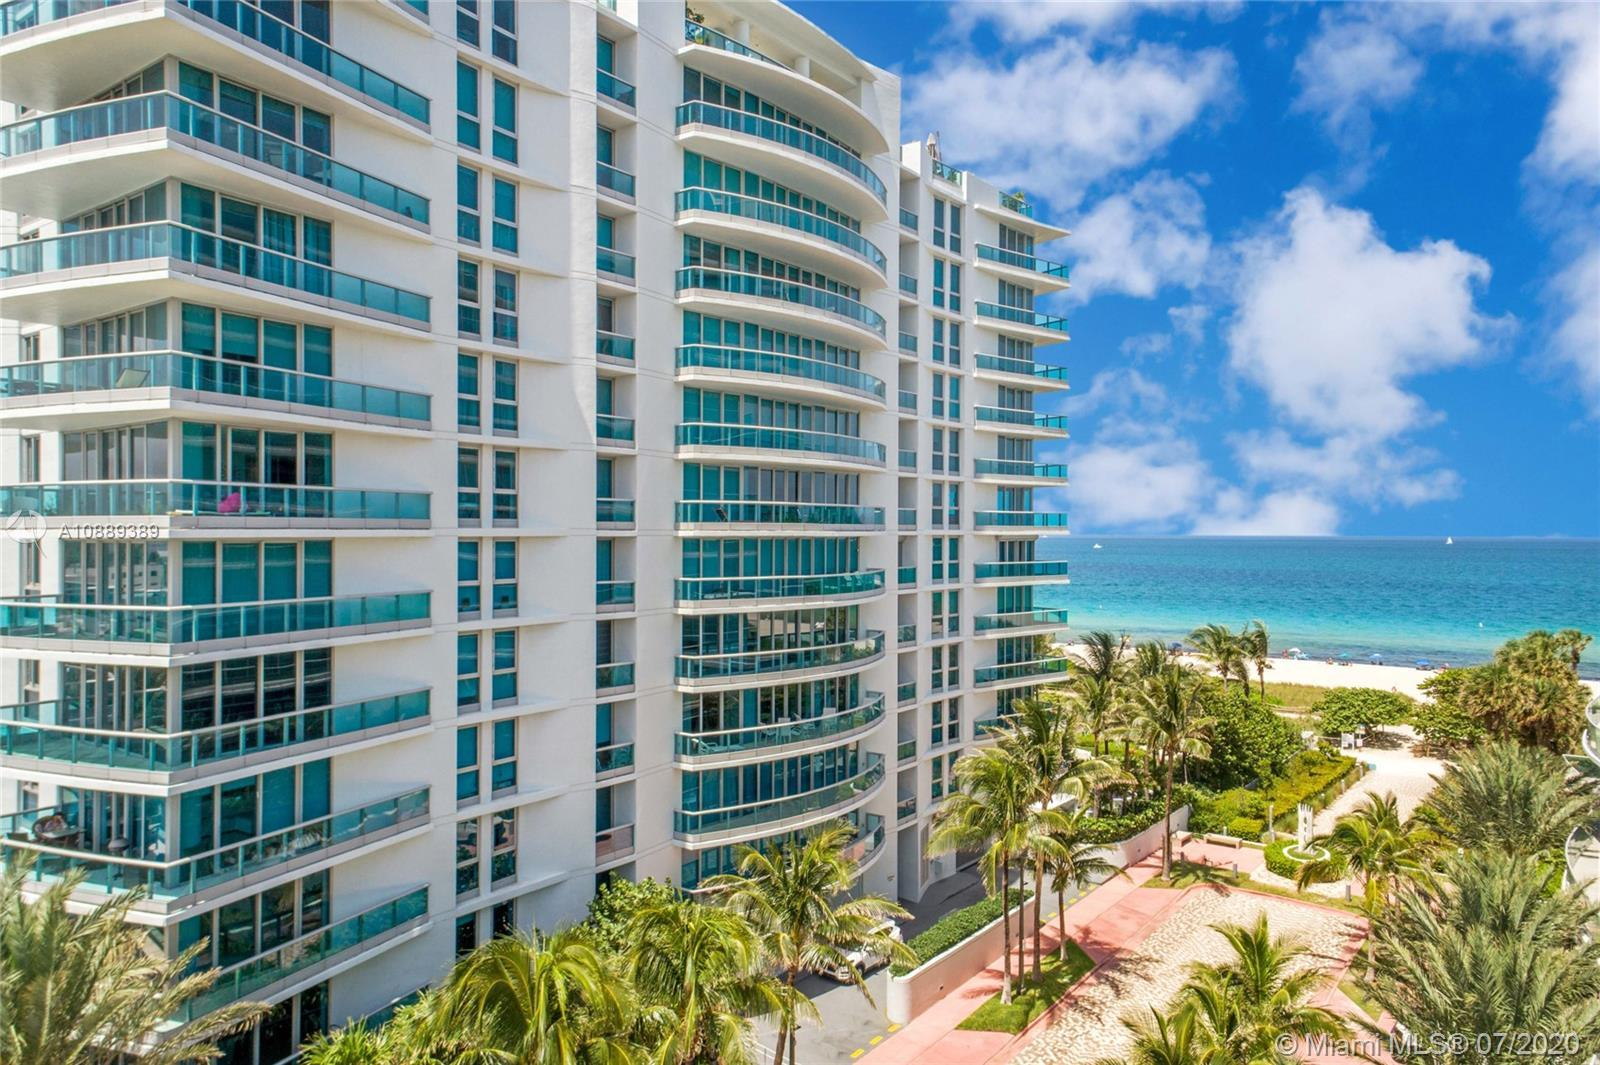 PREPARE TO FALL IN LOVE WITH THIS BEAUTIFUL BEACHFRONT CONDO! This amazing waterfront property offer